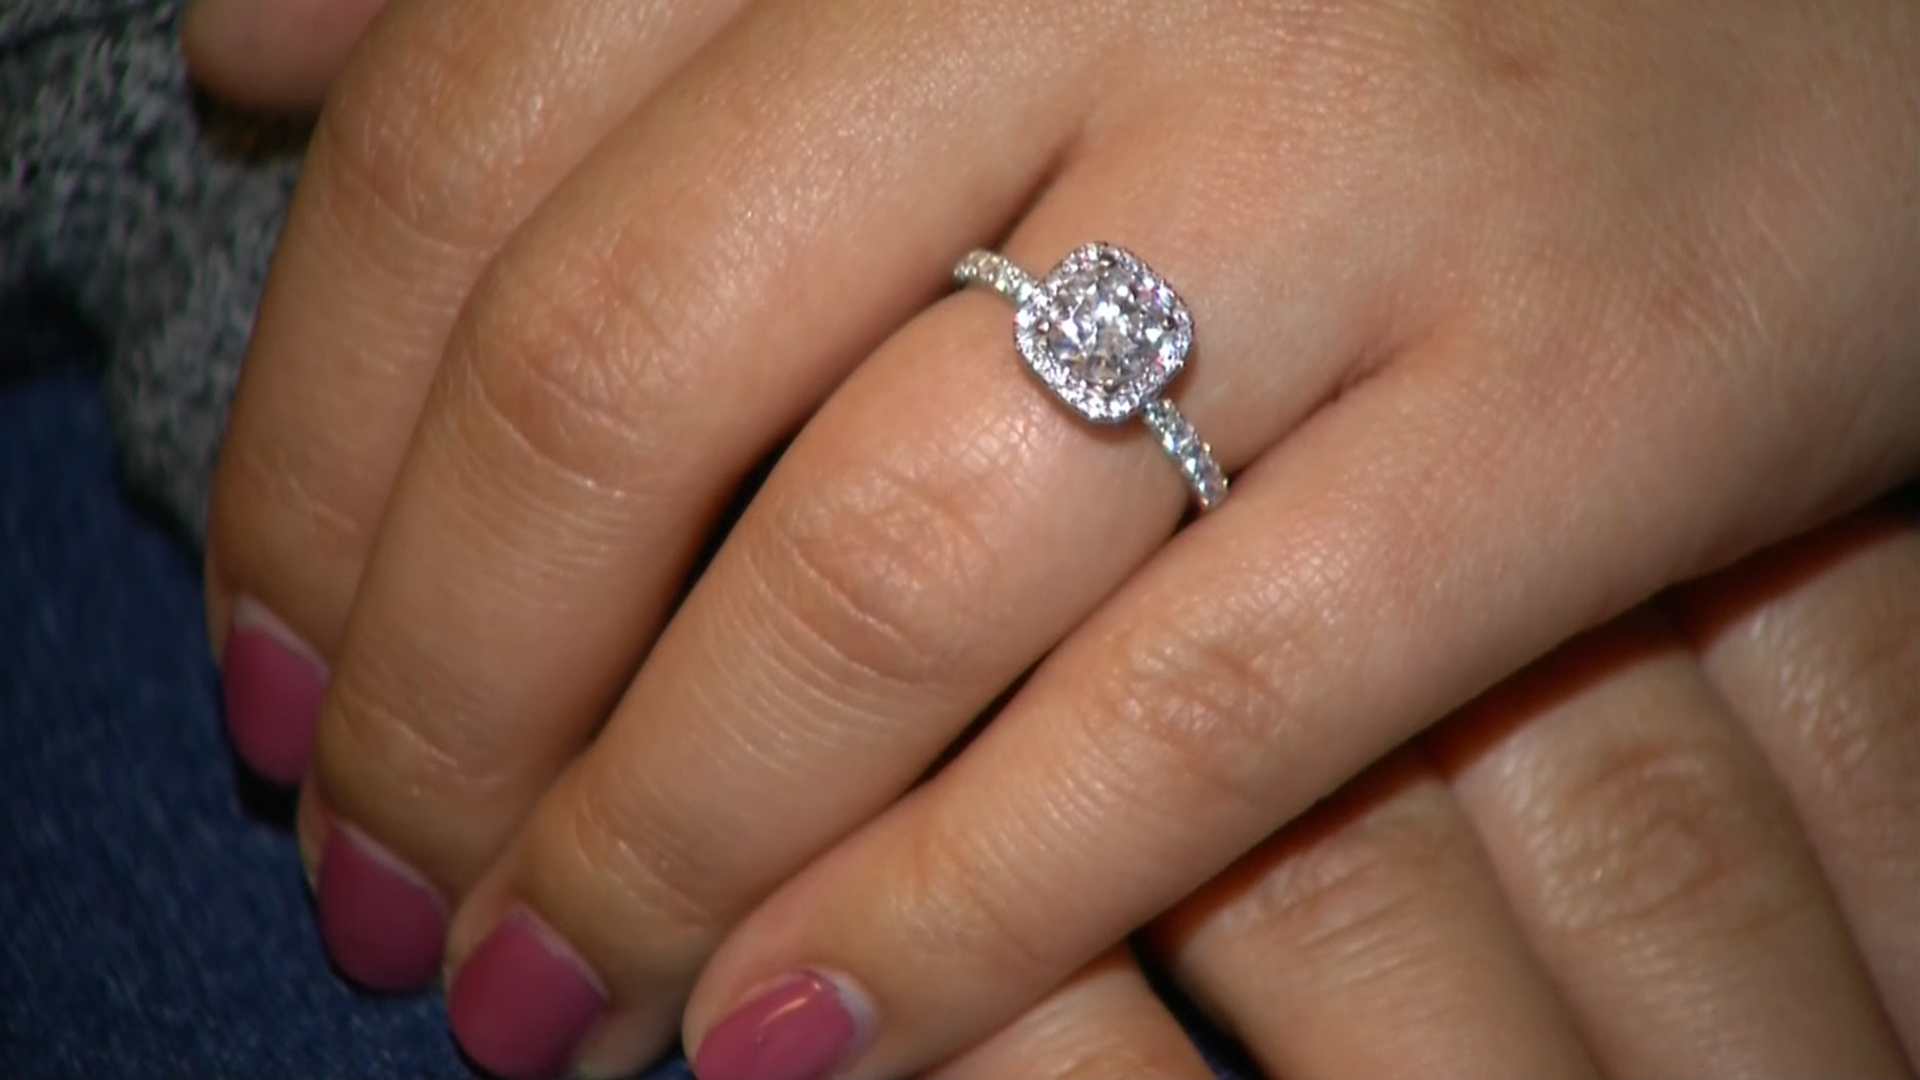 Engagement Ring Found After Being Flushed Down The Toilet